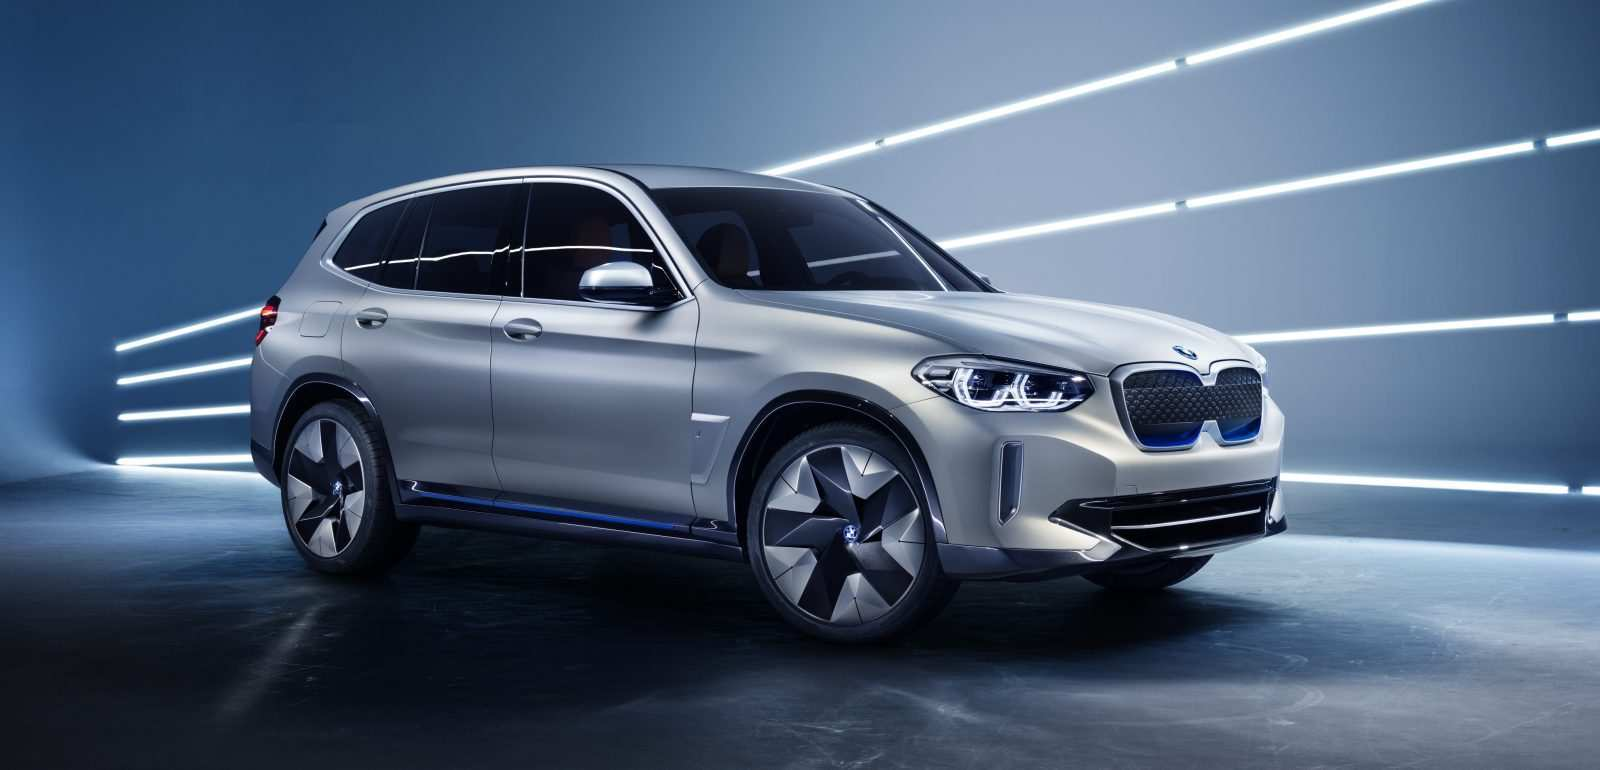 29 Concept of Bmw 2020 Strategy Pictures by Bmw 2020 Strategy